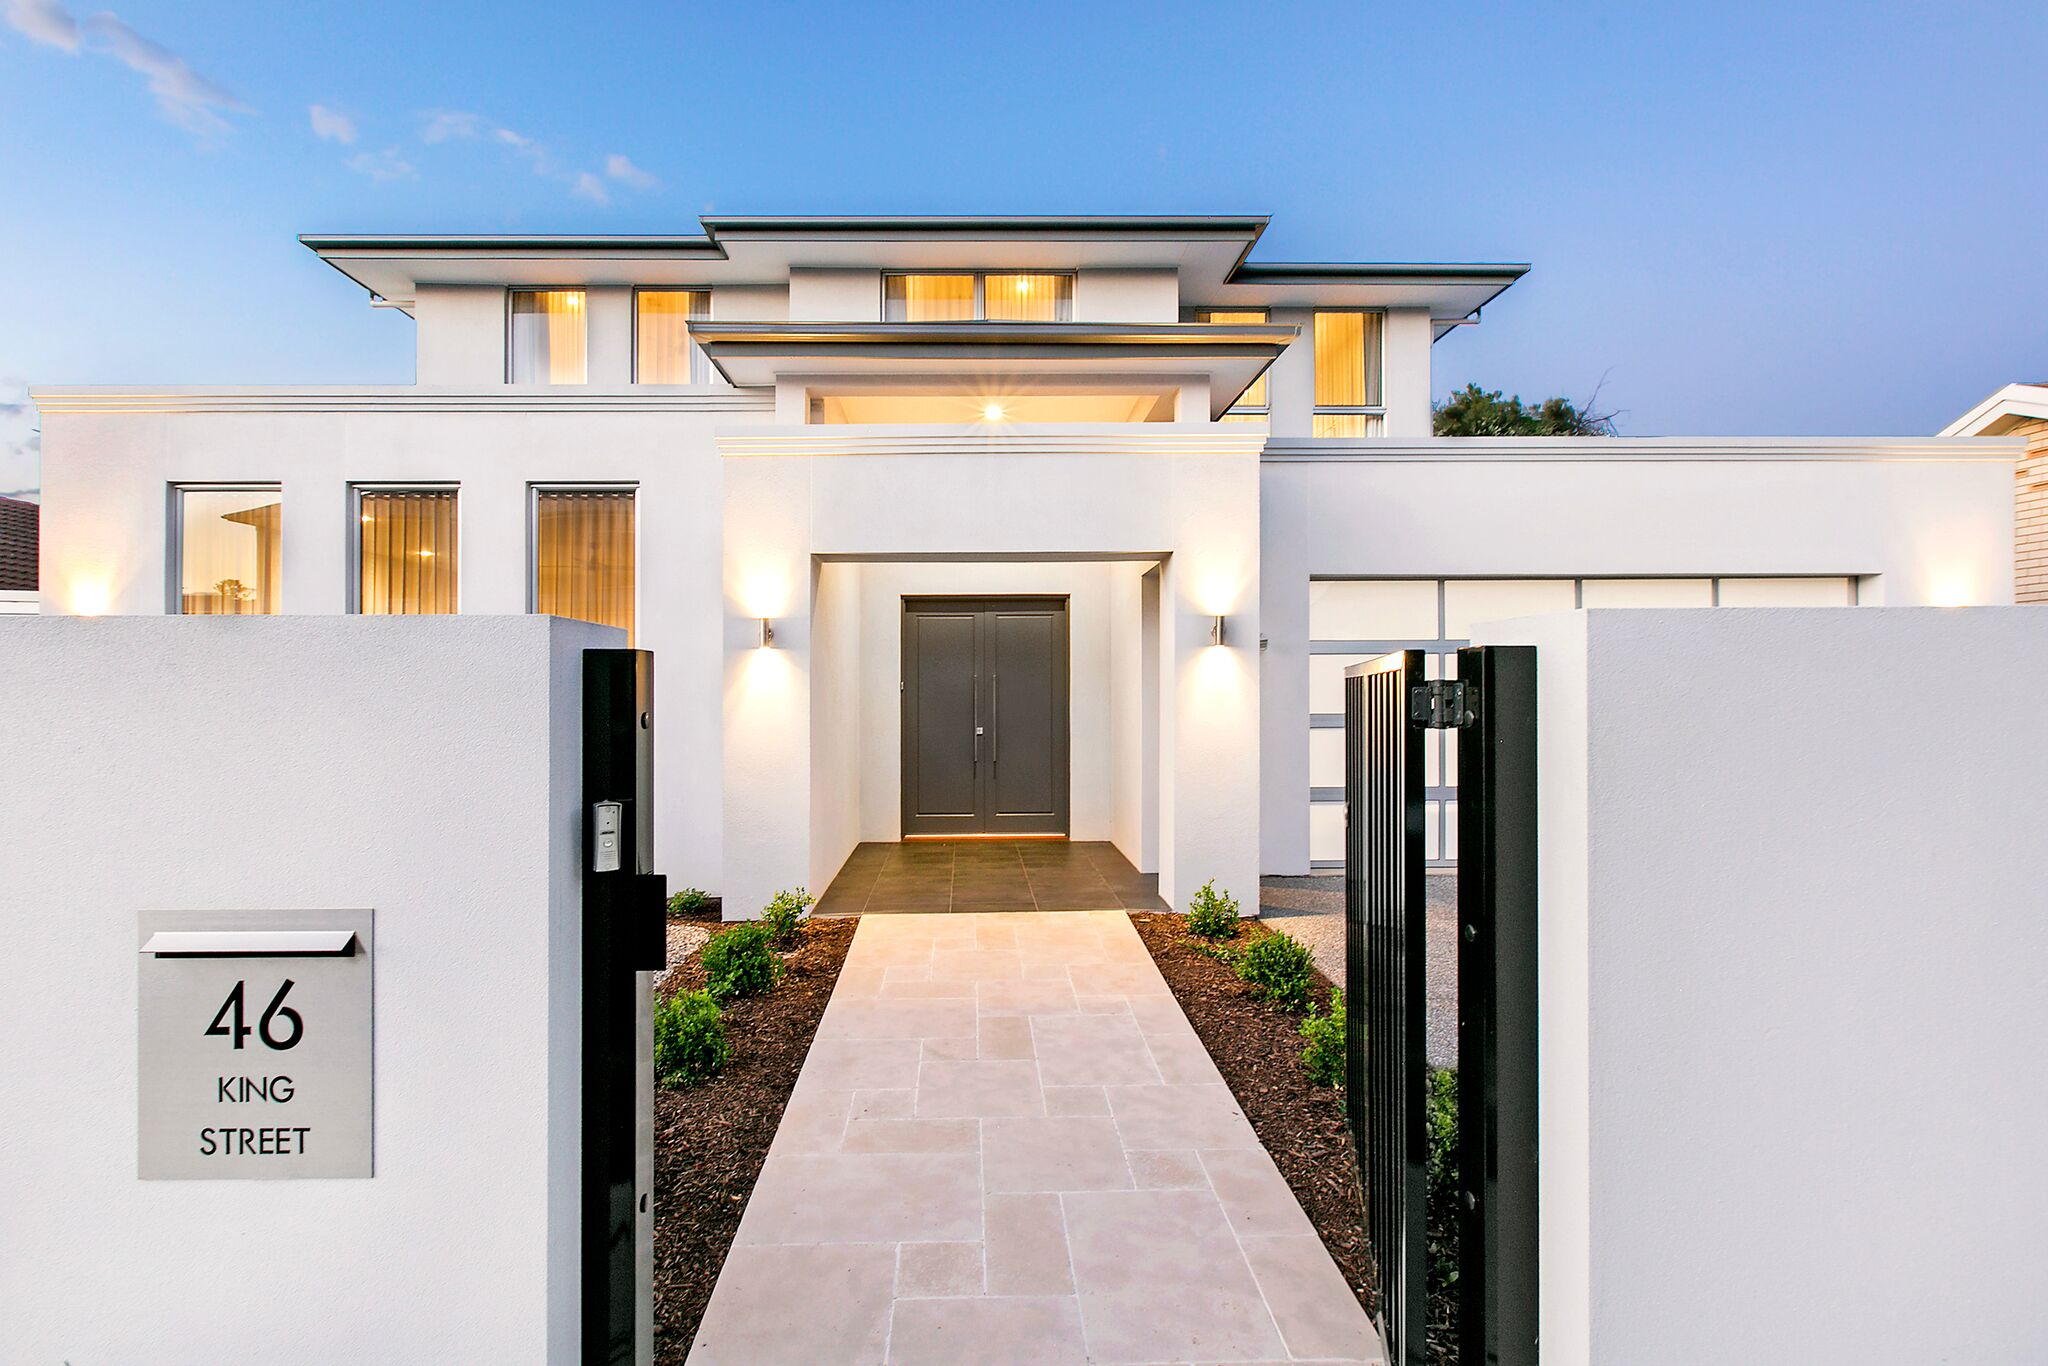 Regent Homes teams up with Hebel on new display home project